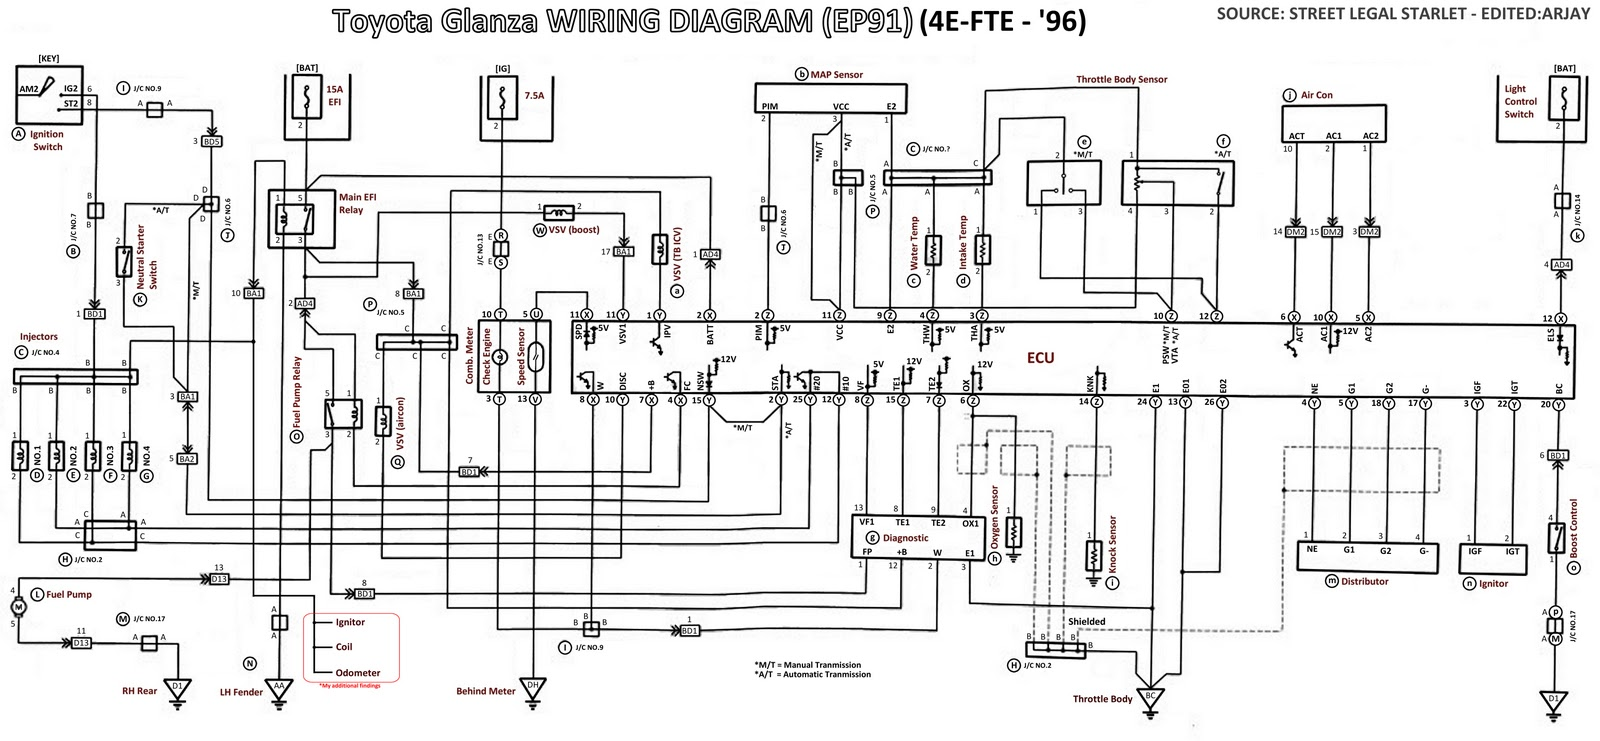 Help With Monsoon Wiring On A Toyota Glanza Ep91 4efte Engine G4 Safc Diagram Wiringdiagramarjayedit